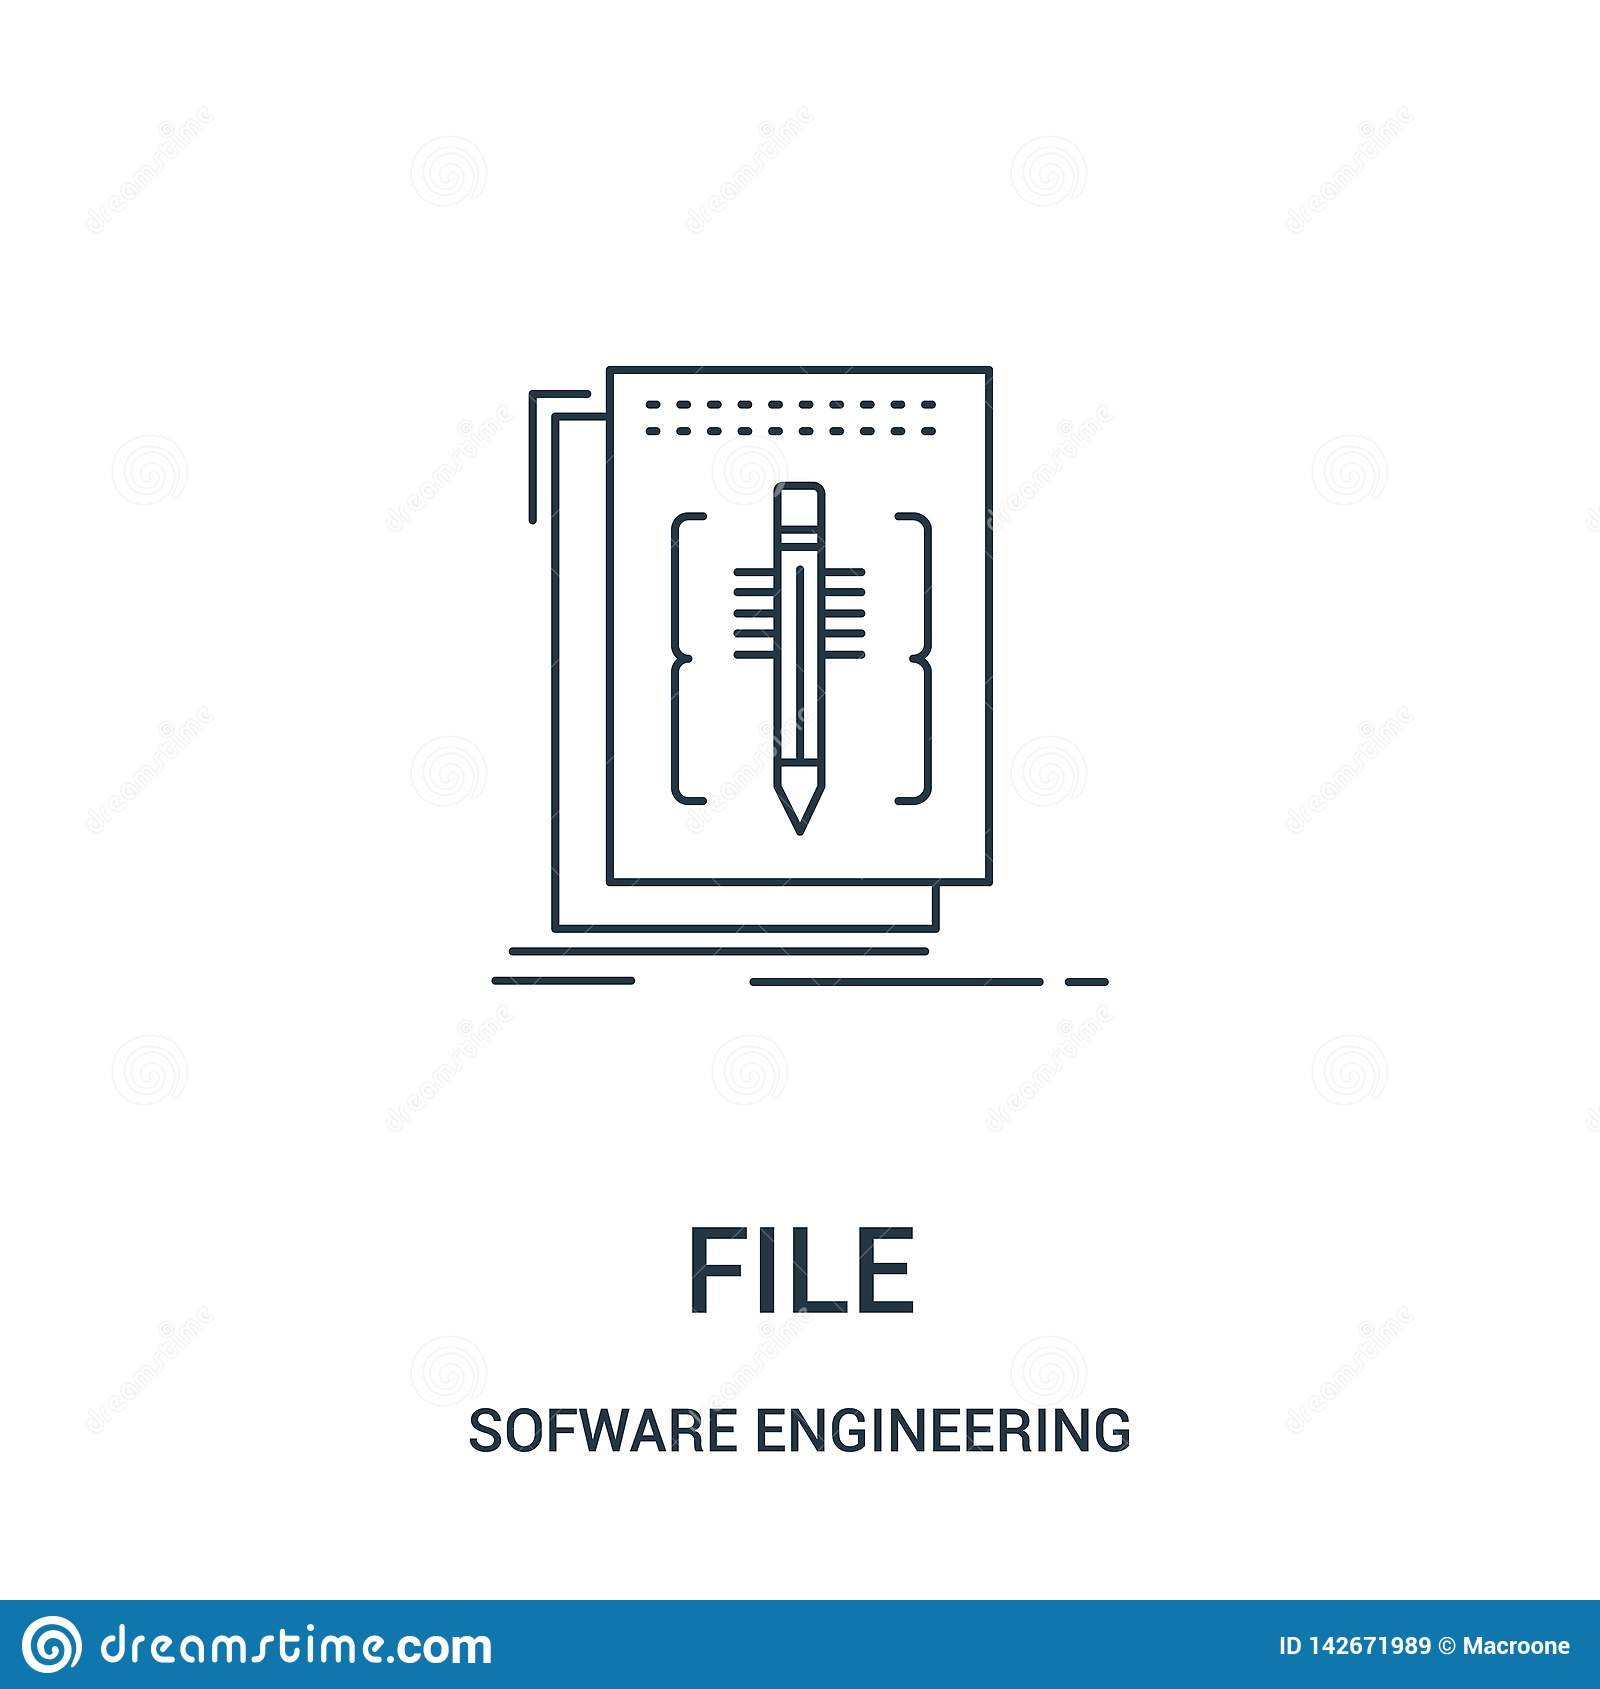 file icon vector from sofware engineering video gaming collection. Thin line file outline icon vector illustration. Linear symbol